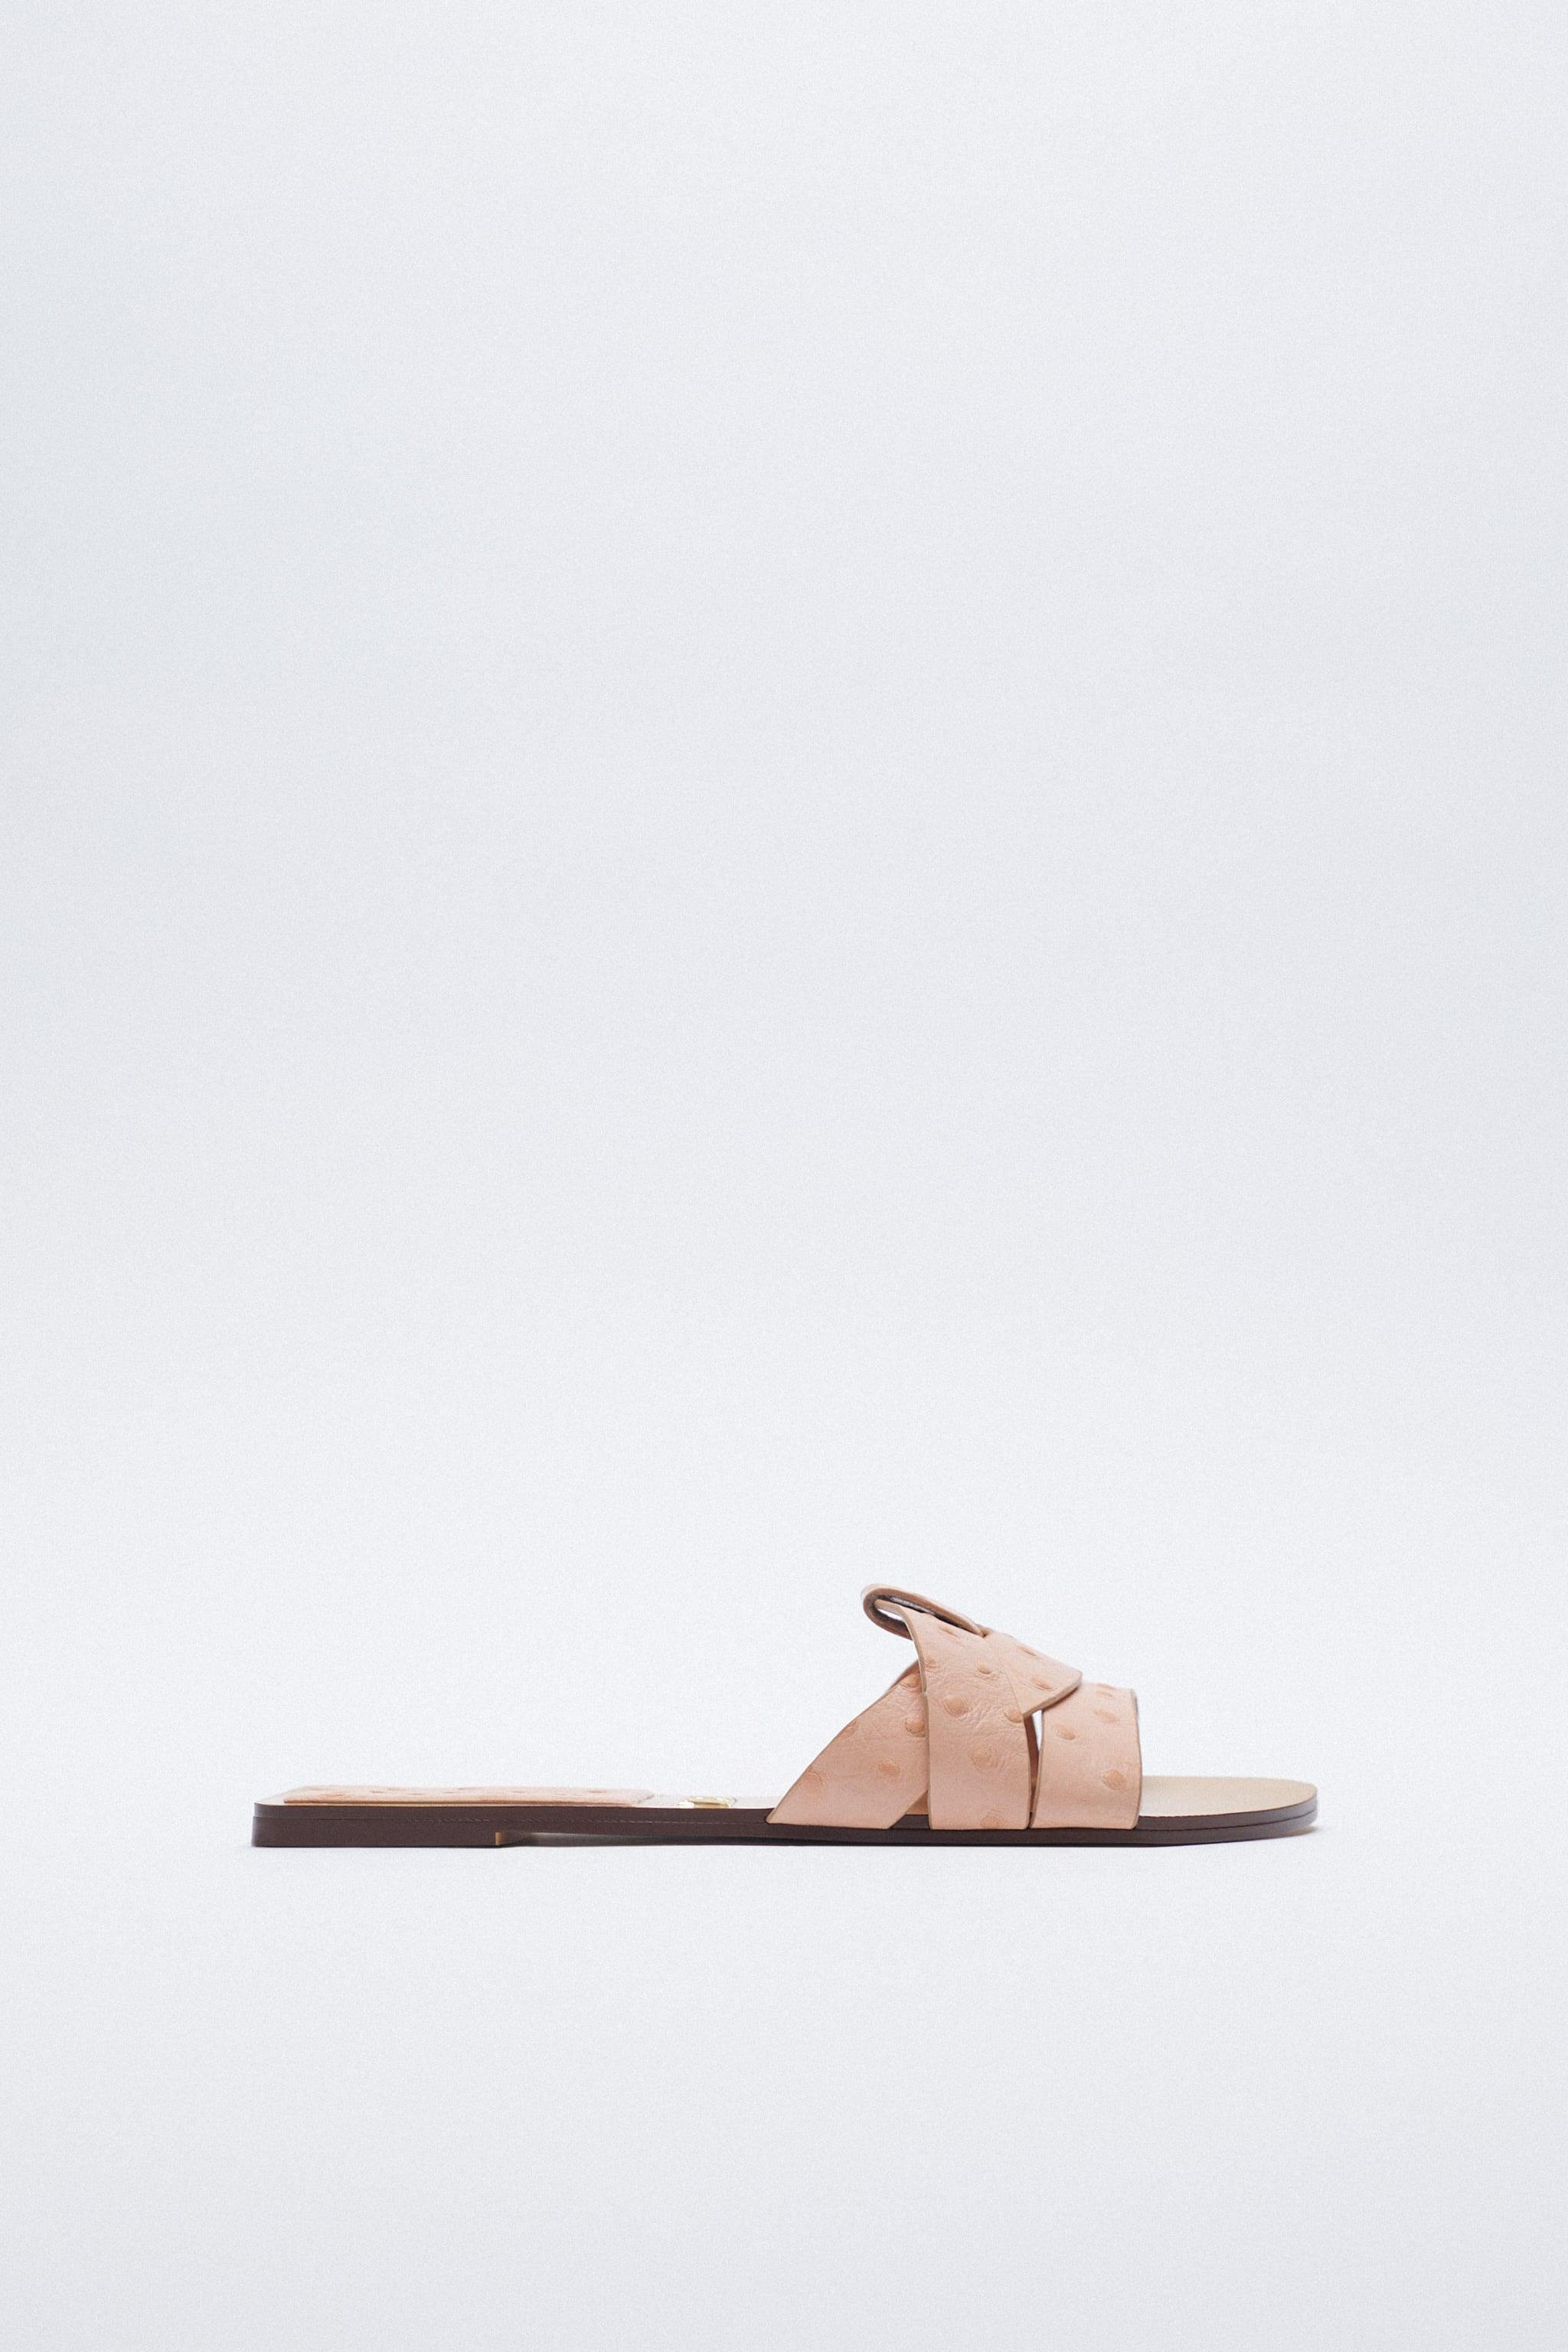 LOW HEELED CROSSED LEATHER SANDALS